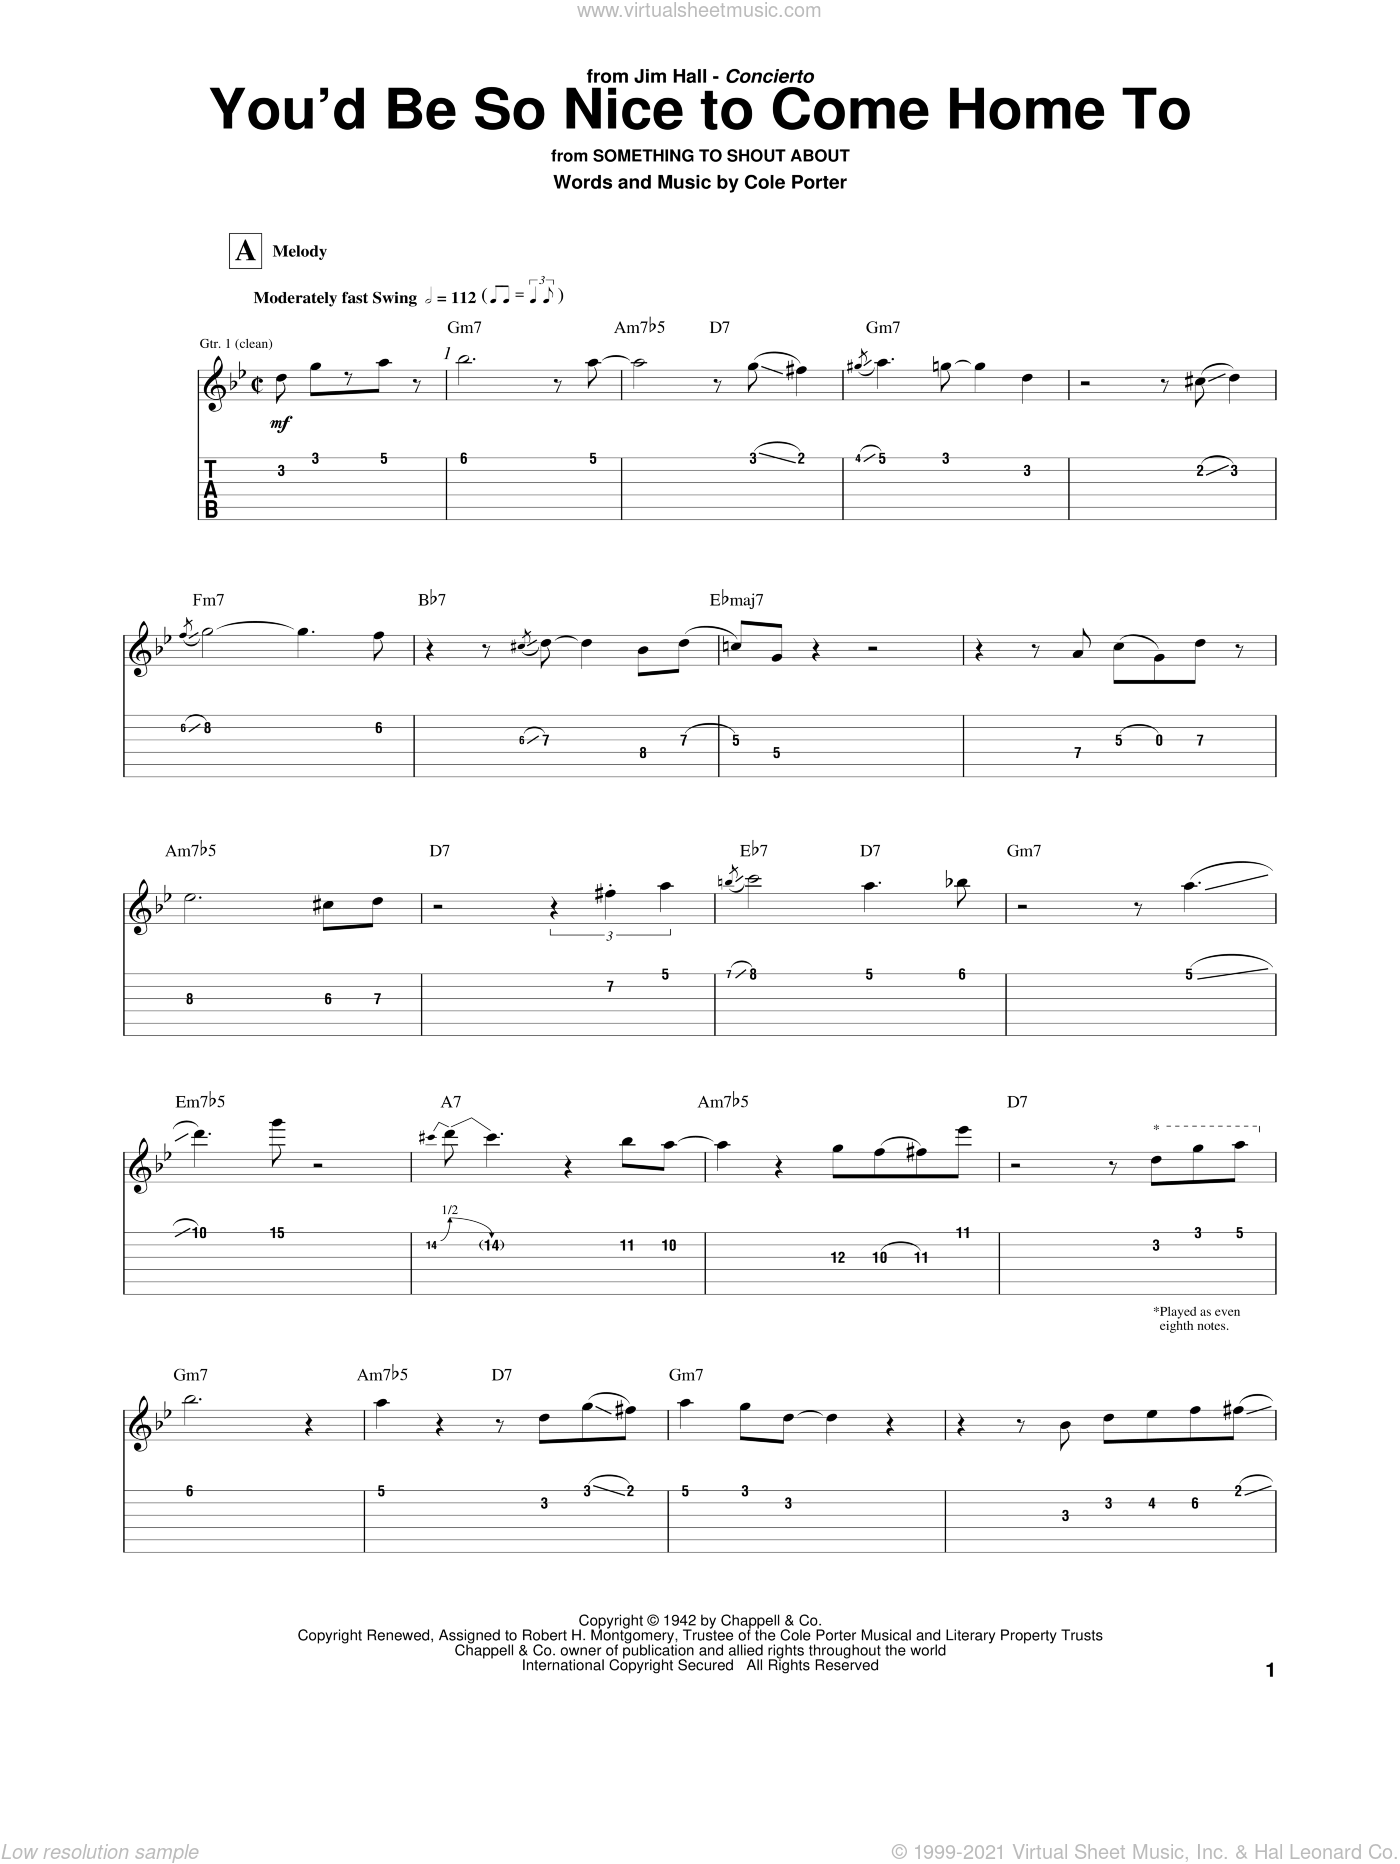 You'd Be So Nice To Come Home To sheet music for guitar (tablature) by Jim Hall and Cole Porter. Score Image Preview.